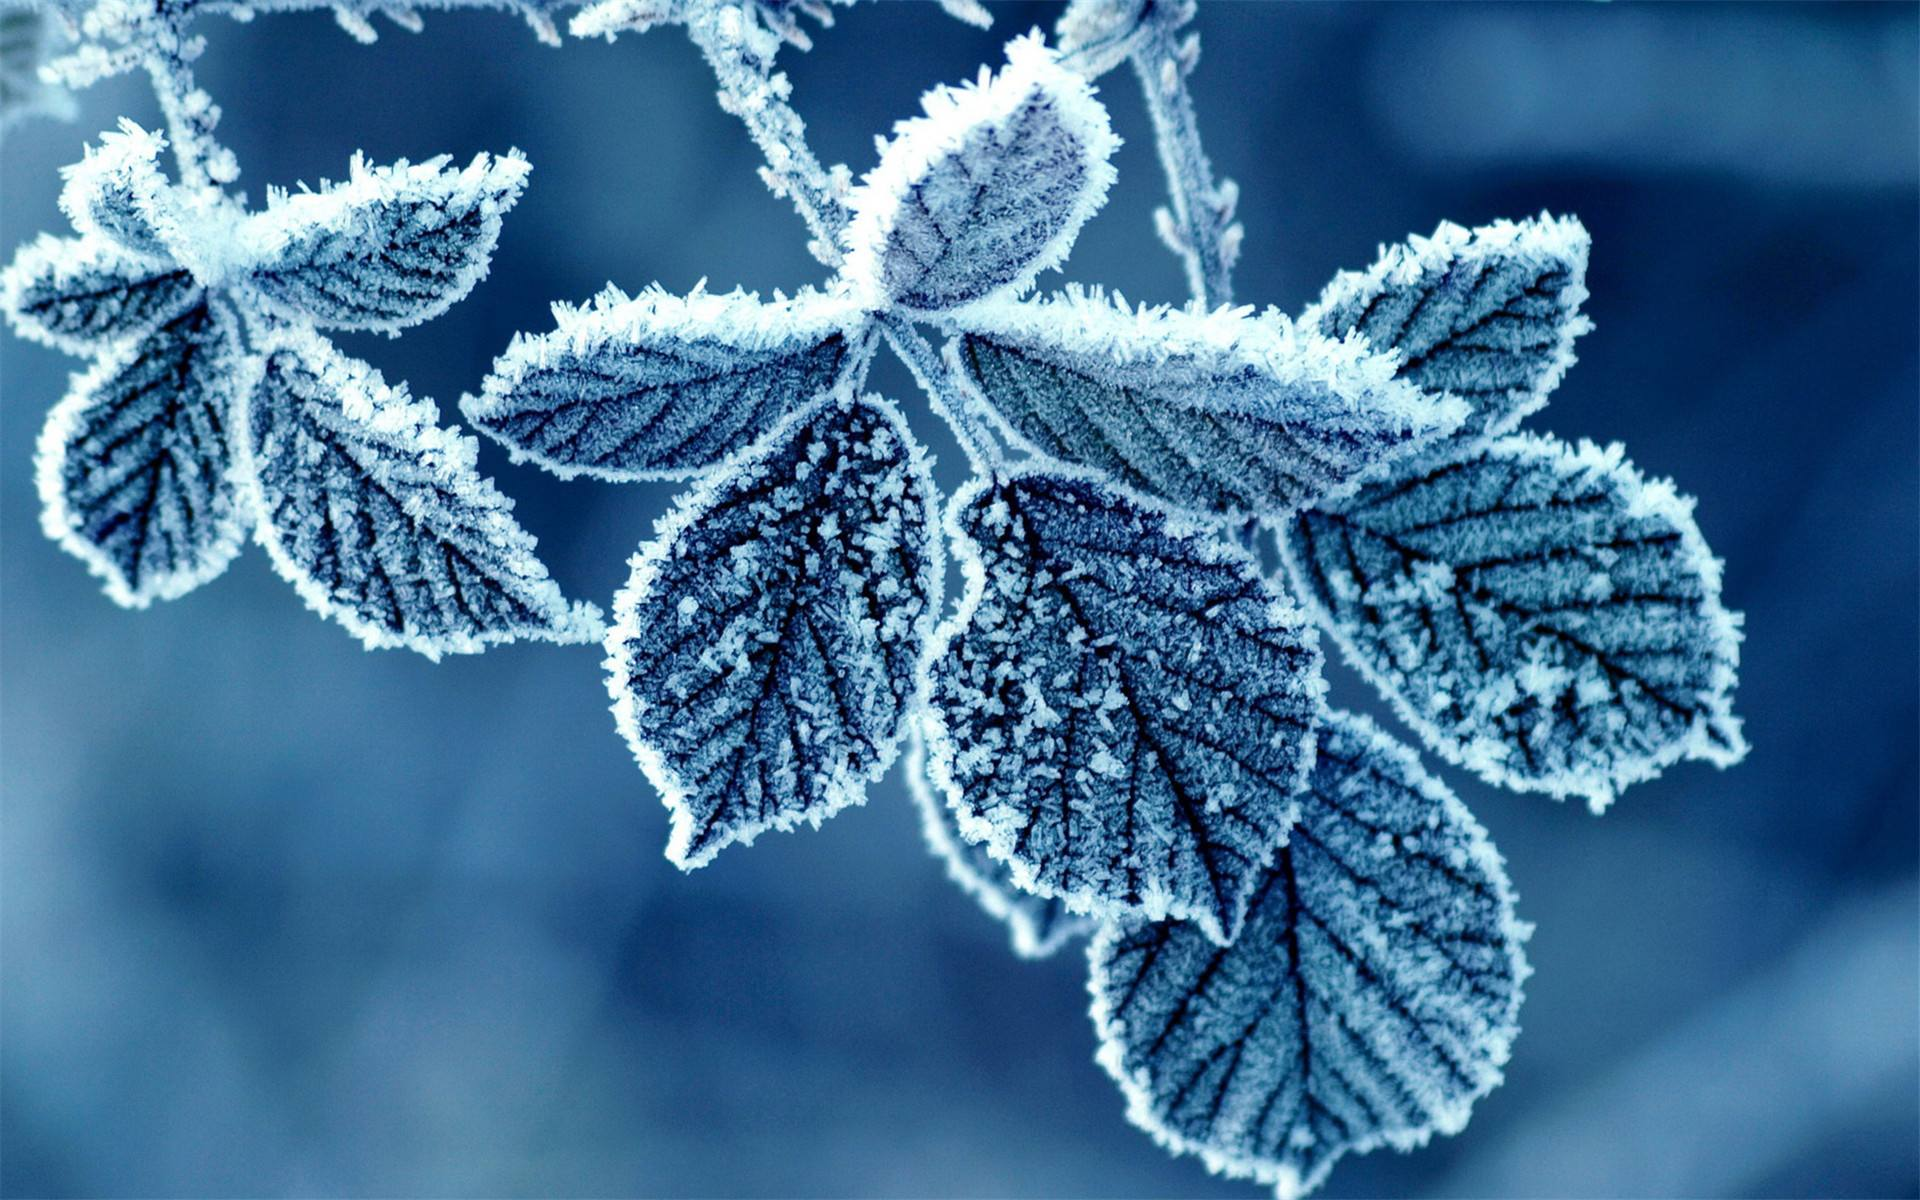 Chinese solar terms: Frost Descent